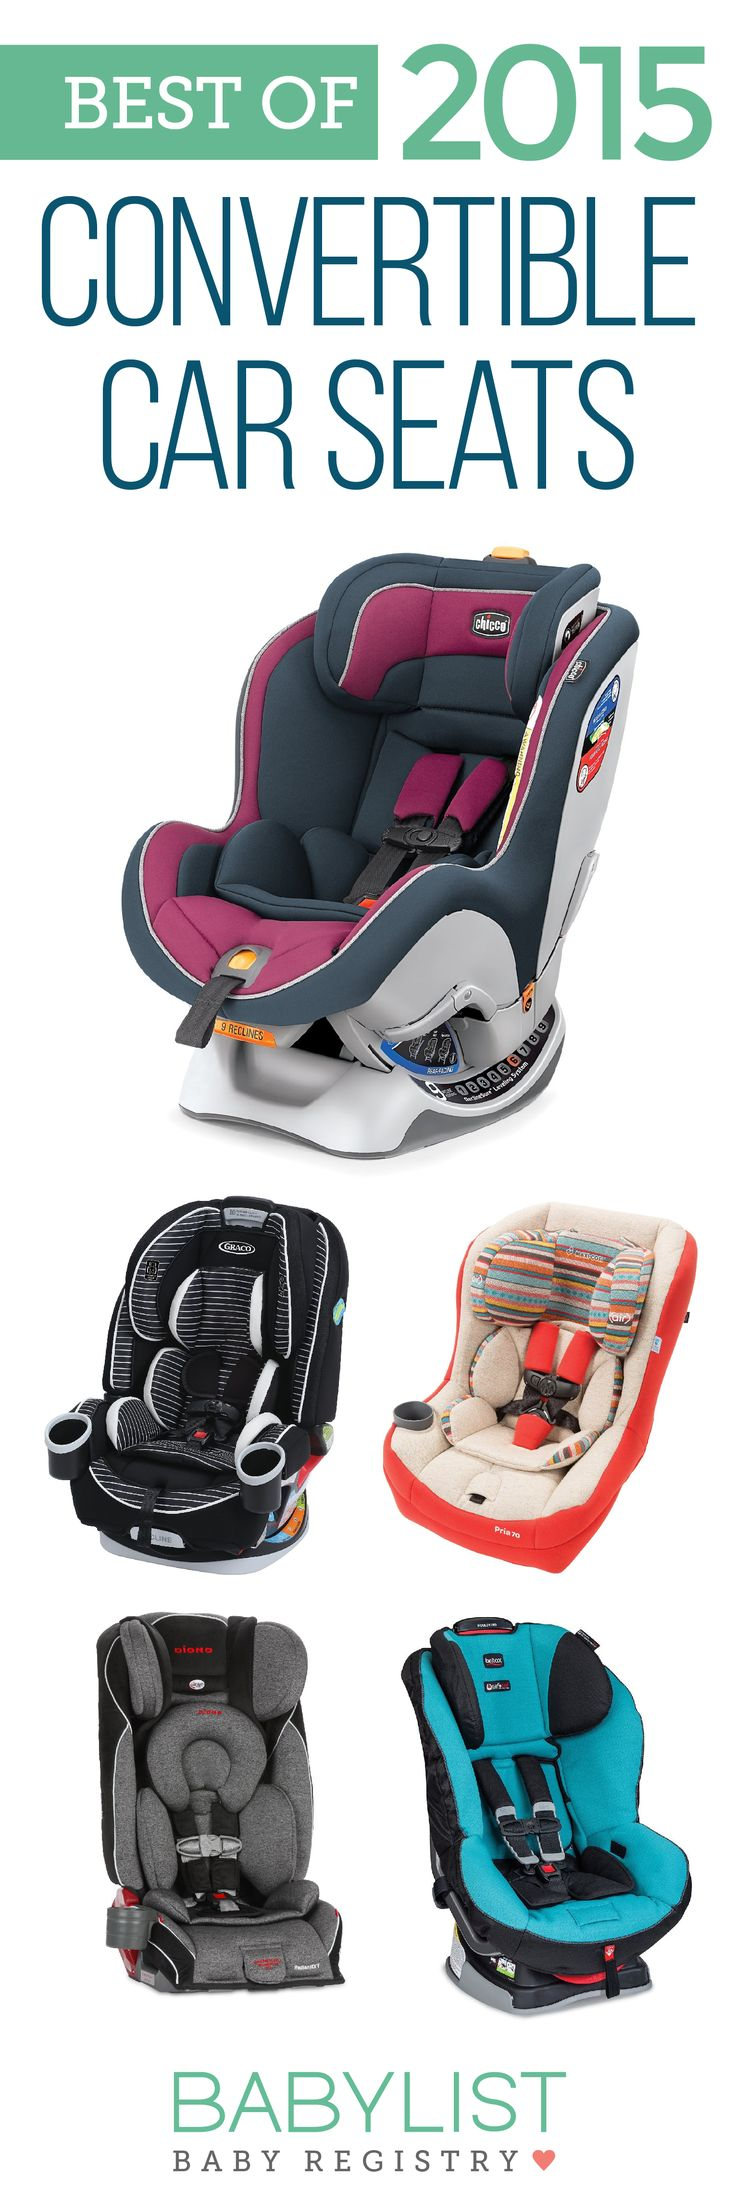 Need some advice to help you pick the best convertible car seat? Here are the 7 best convertible seats of 2015 - based on our own research + input from thousands of parents. There is no one must have car seat. Every family is different. Use this guide to help you figure out the best one for your family's needs and priorities.